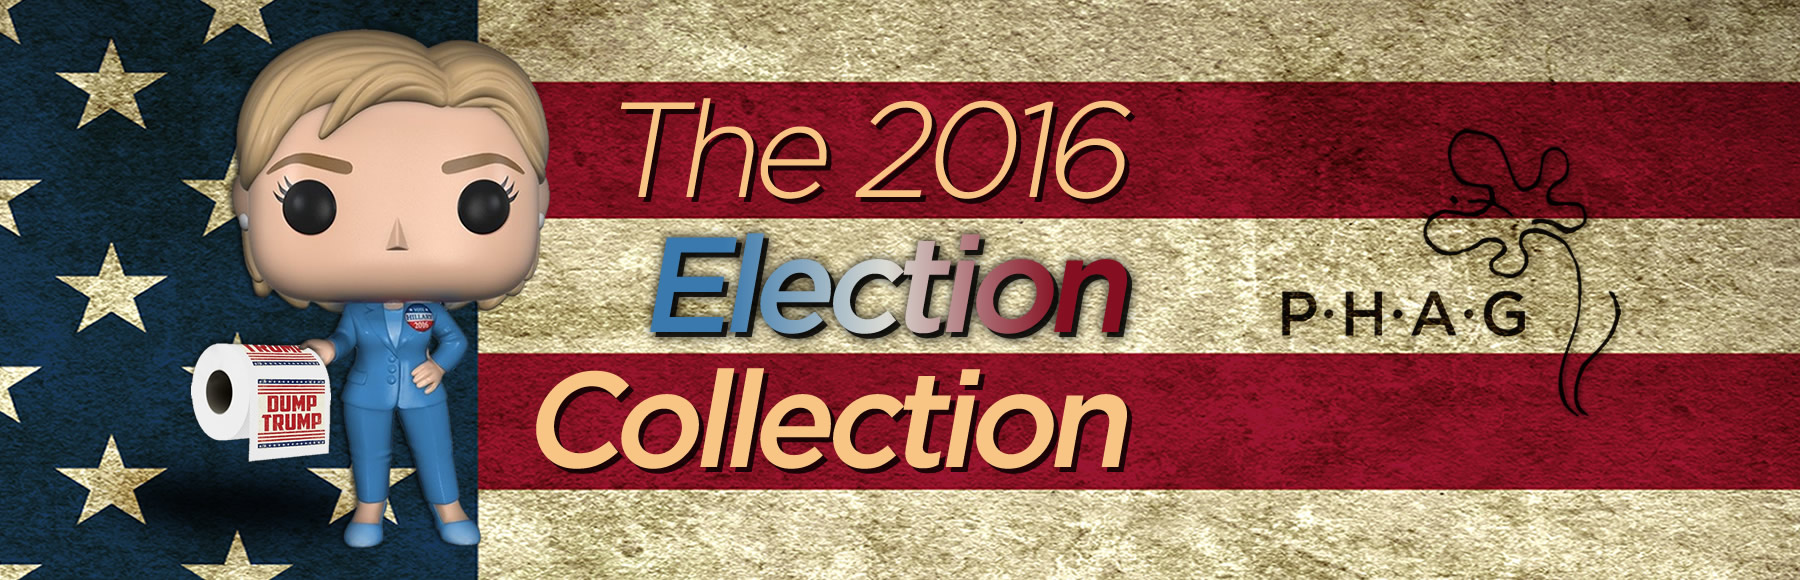 PHAG-2016-Election-Collection-Banner-Final-1